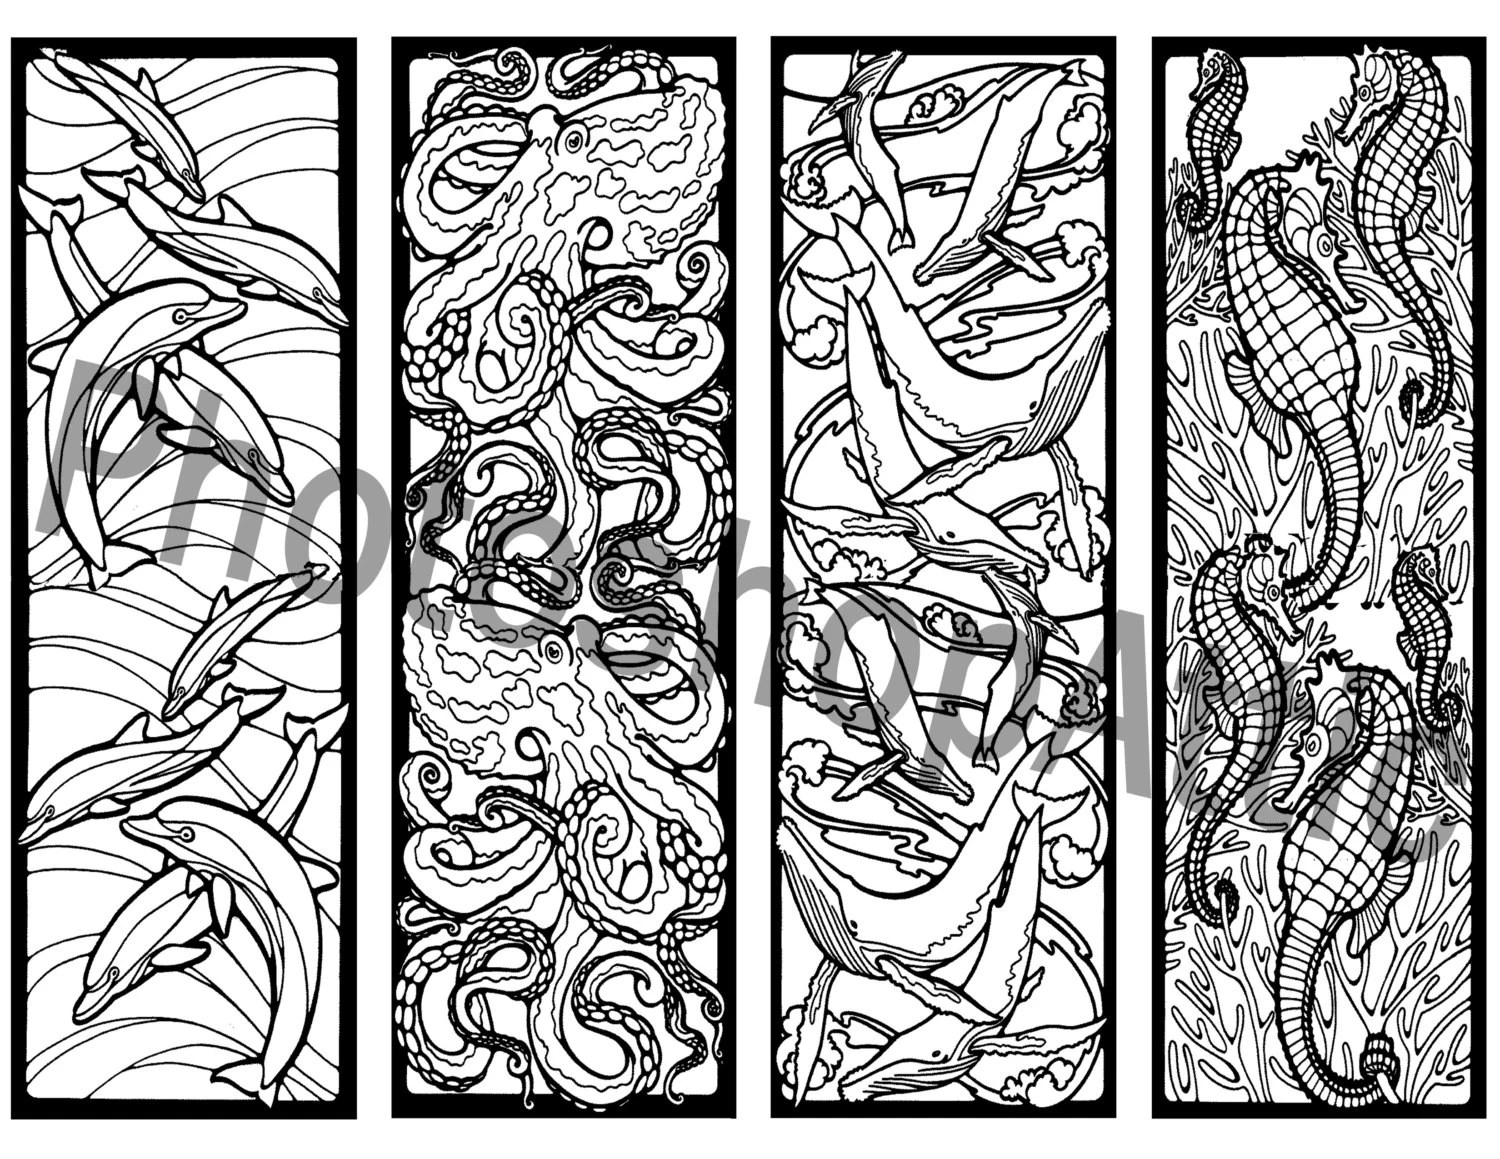 Mosaic Ocean Life Bookmarks Coloring Printable Page Sheet PDF